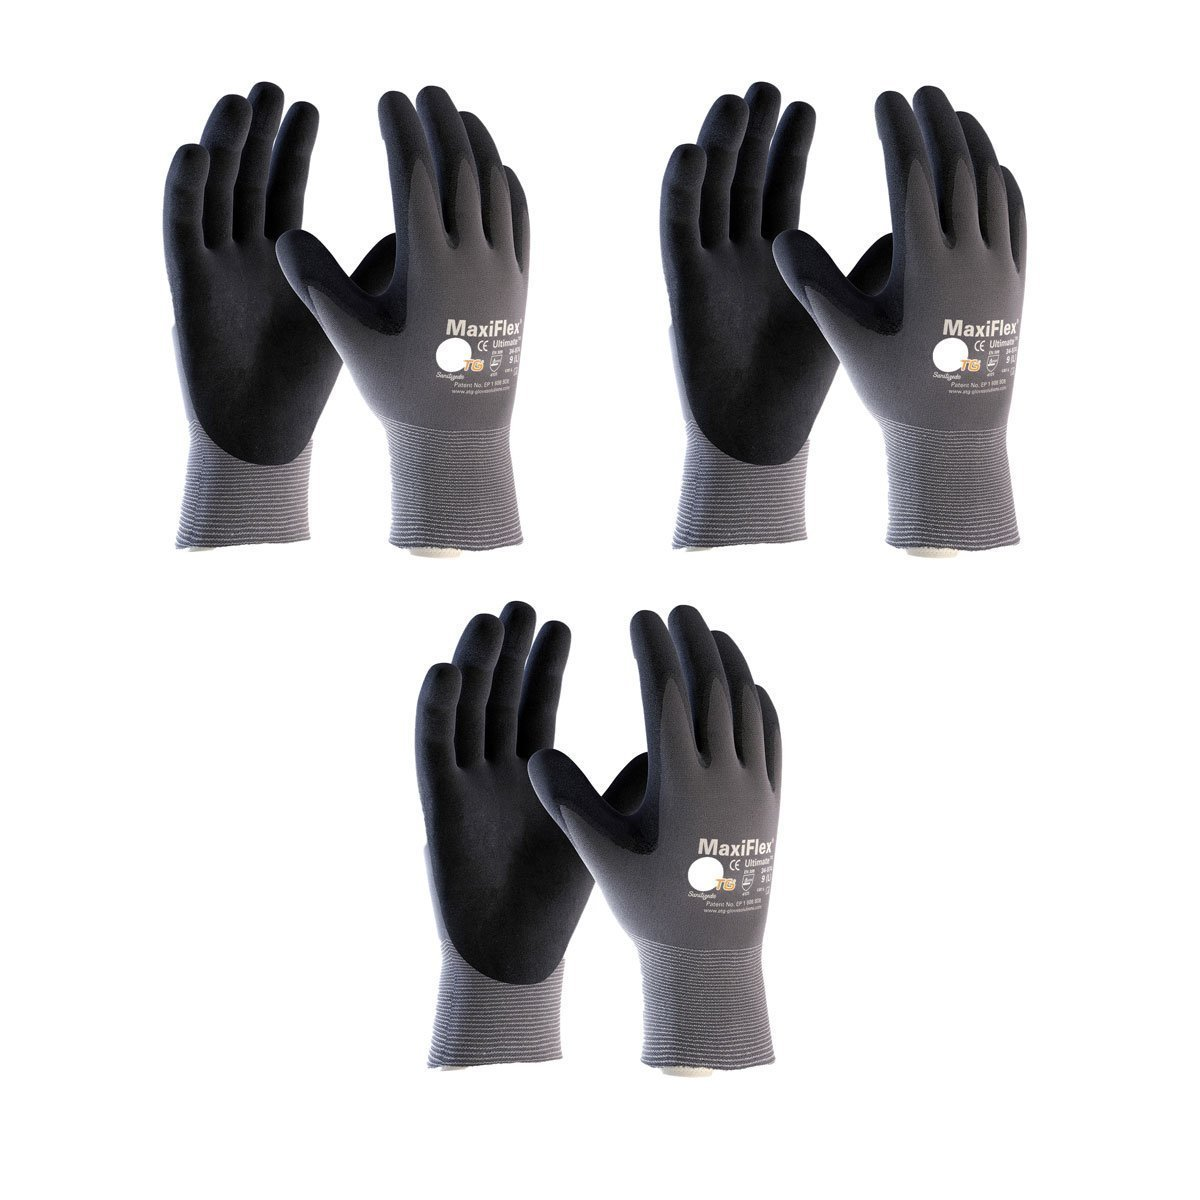 Maxiflex 34-874 Ultimate Nitrile Grip Work Gloves, X-large , 3 Piece